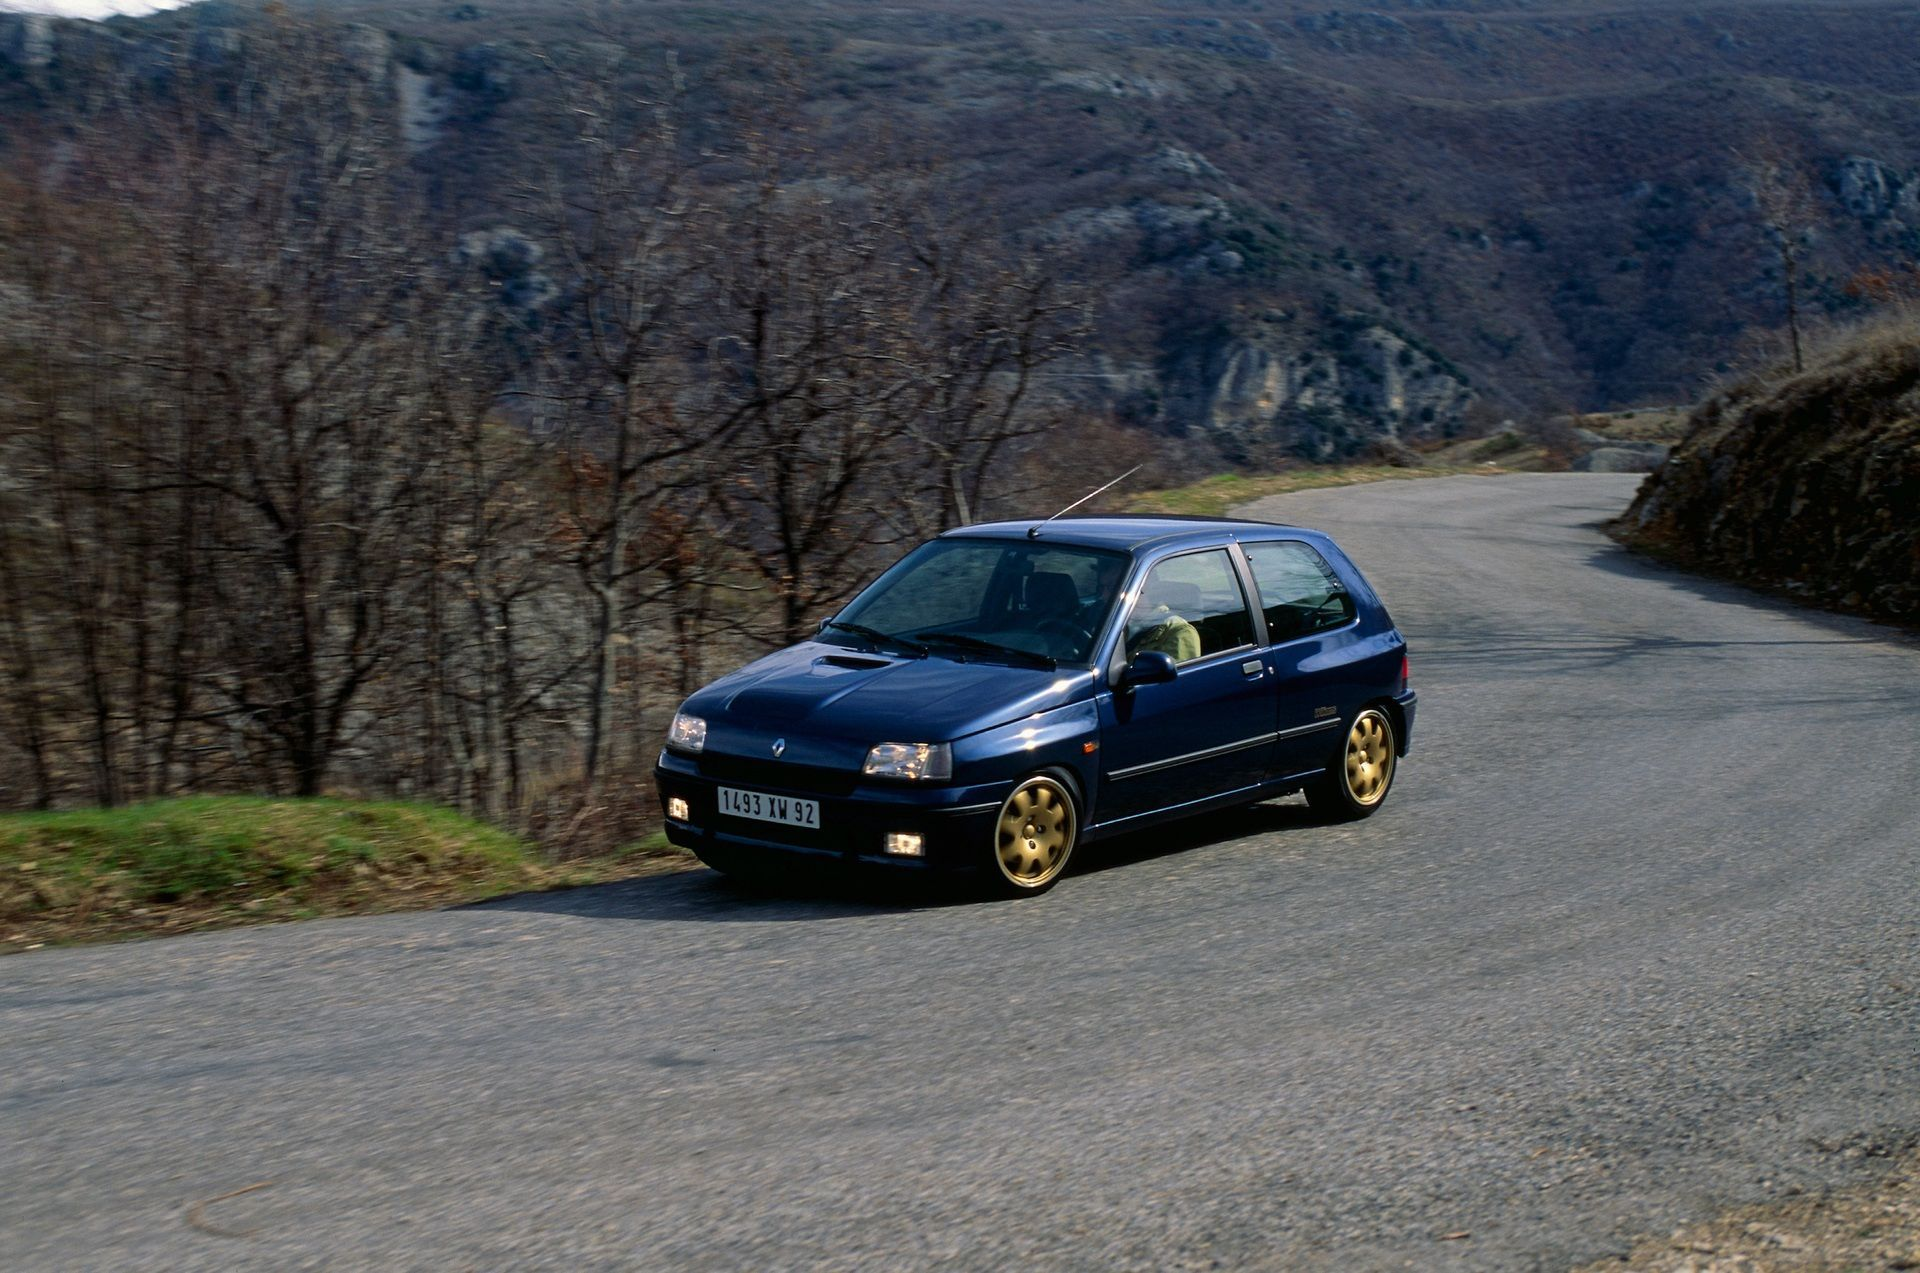 2020-30-years-of-Renault-CLIO-Renault-CLIO-I-1990-1999-10